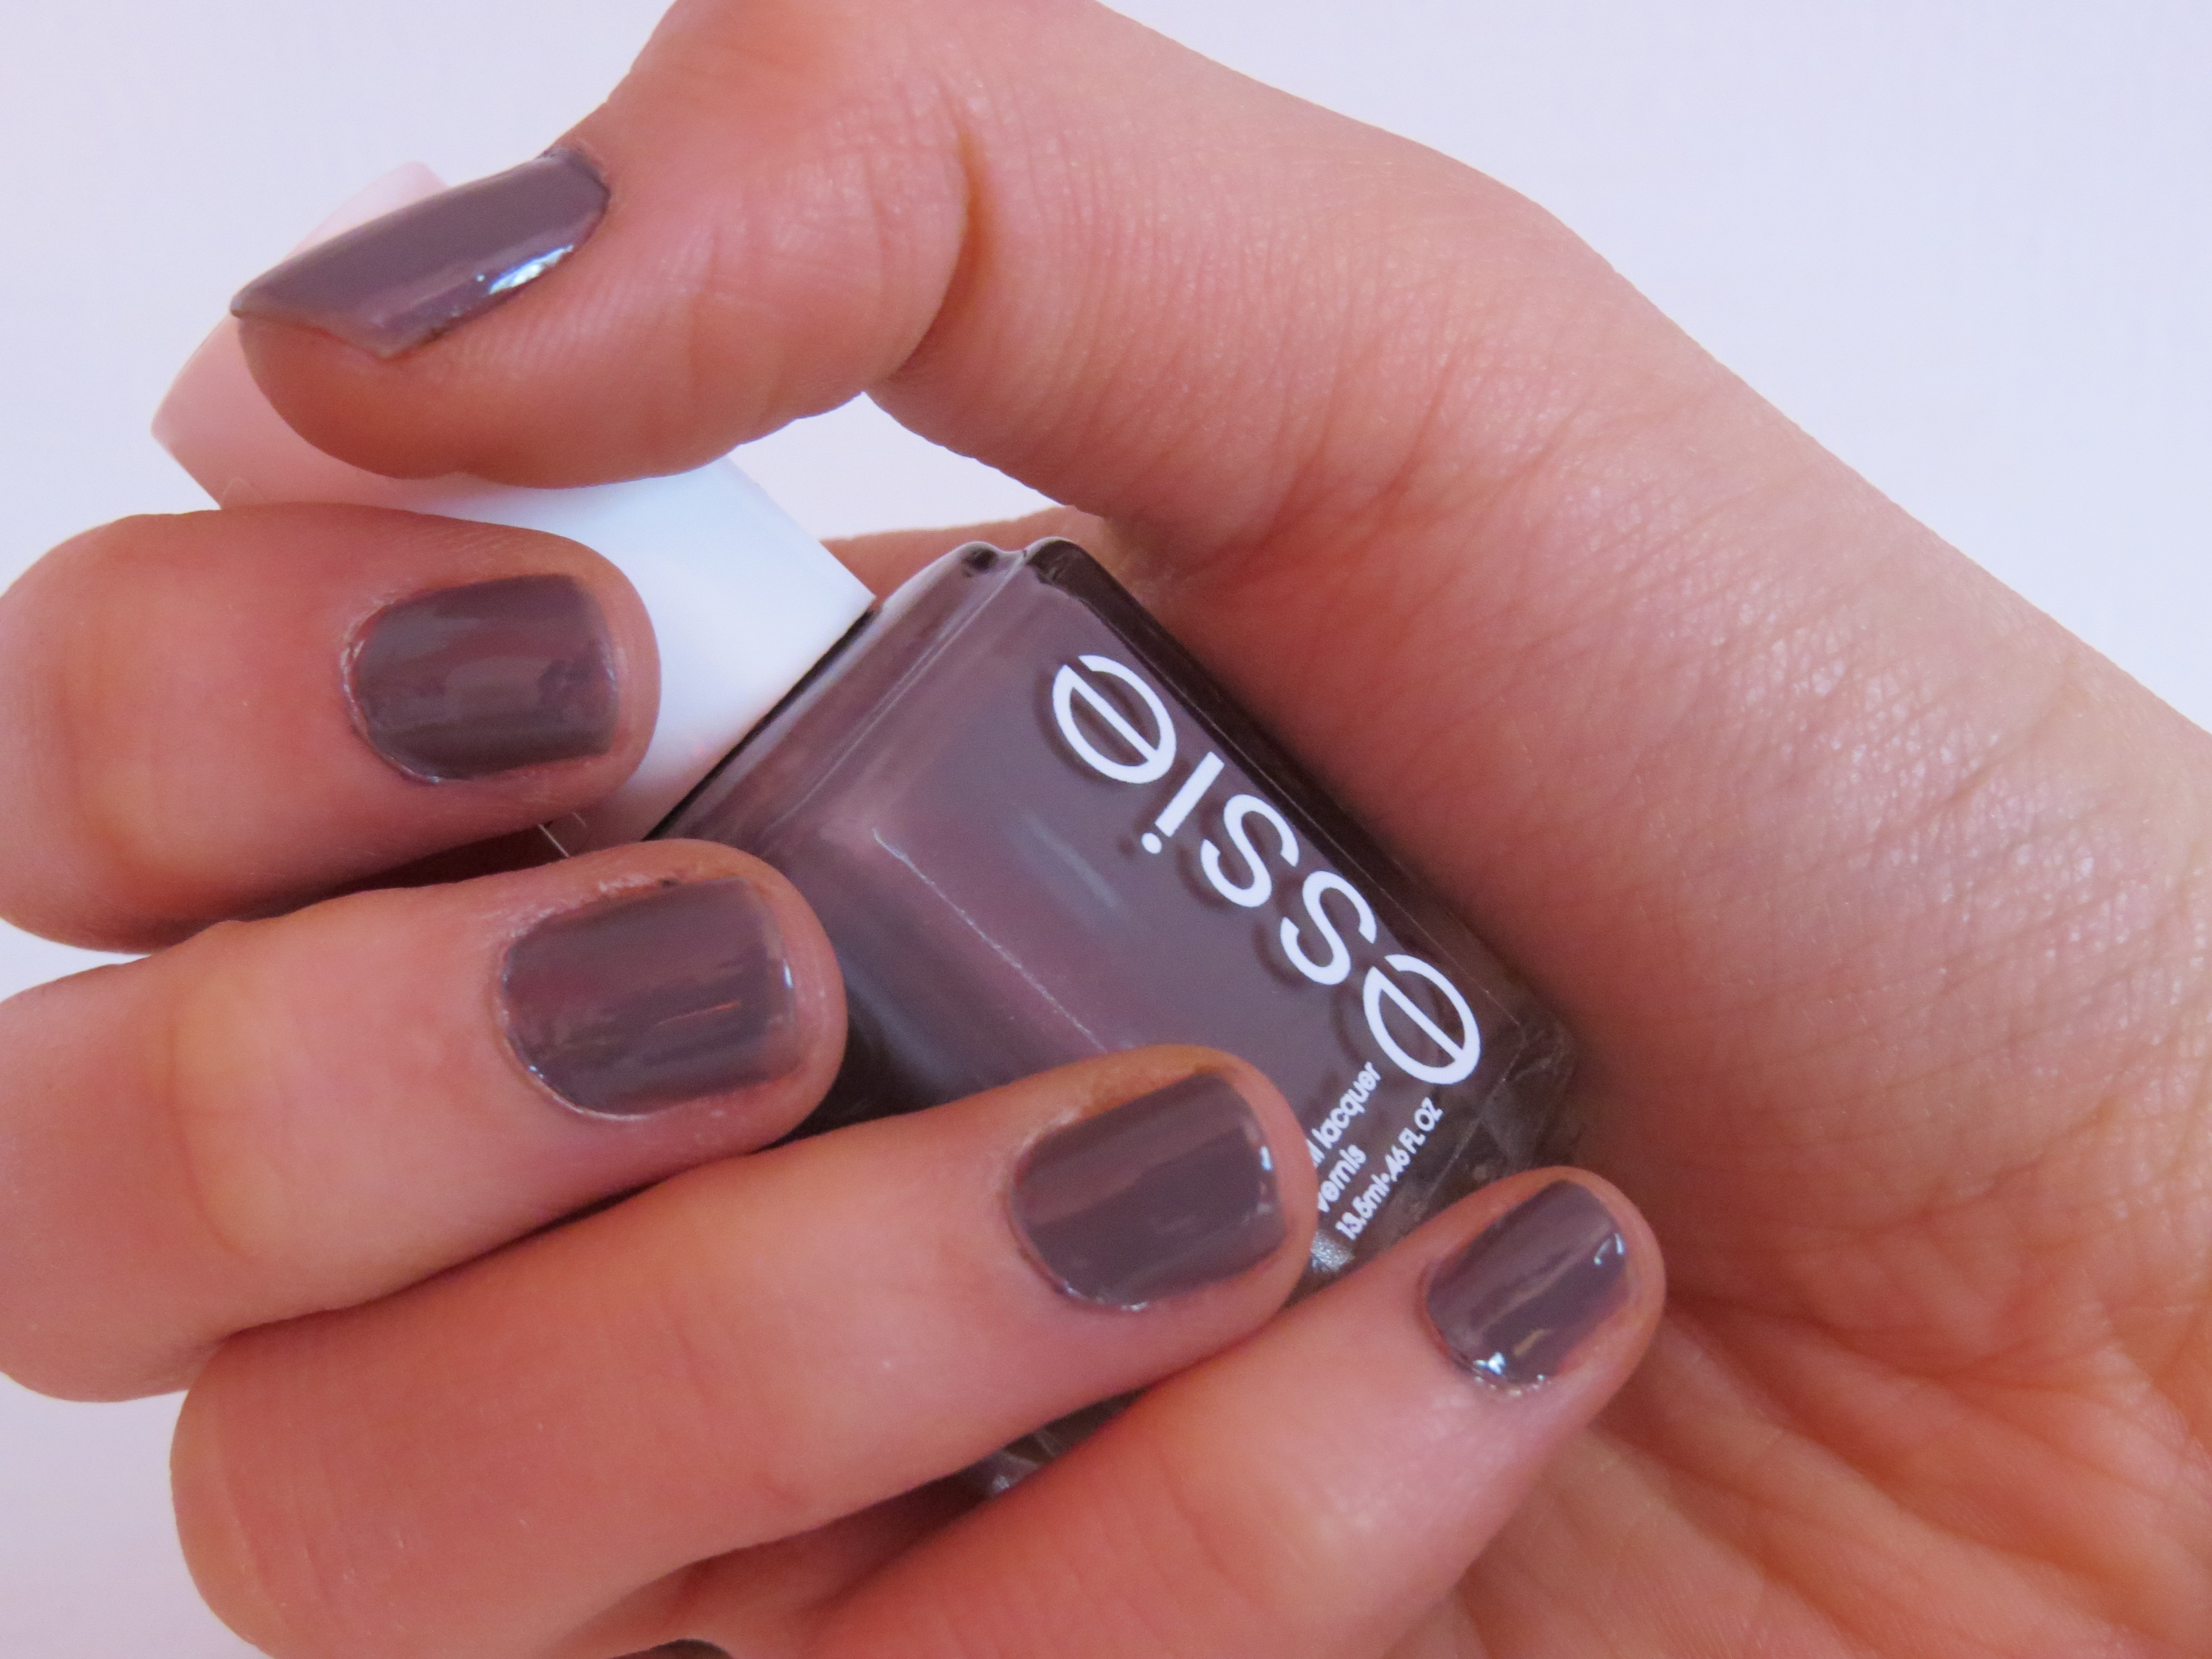 Nails of the Month: March 2013 | thedaintydaisies